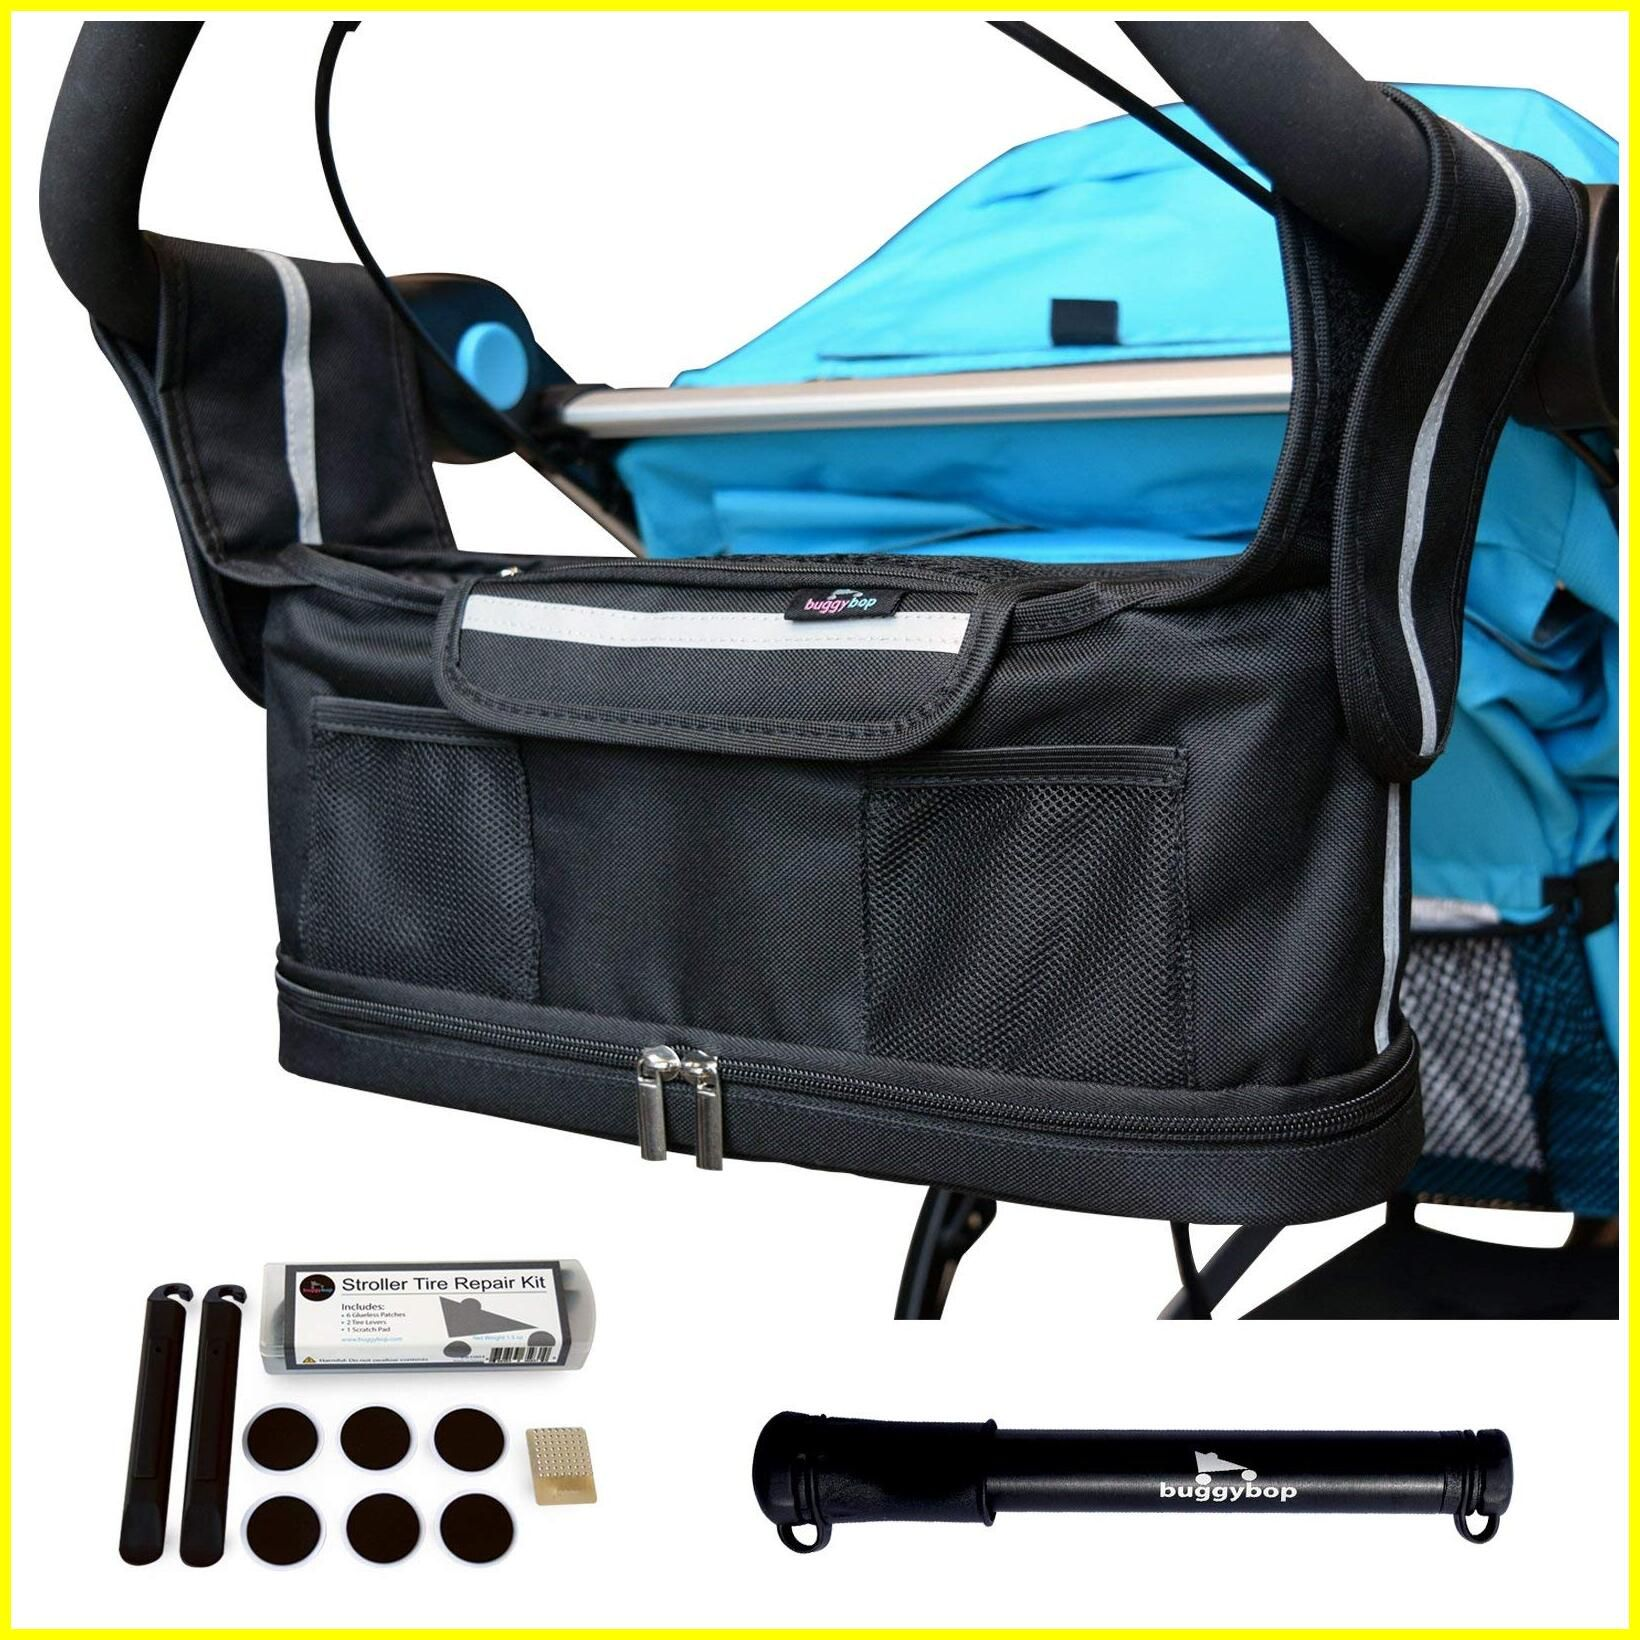 71 reference of best stroller organizer for double